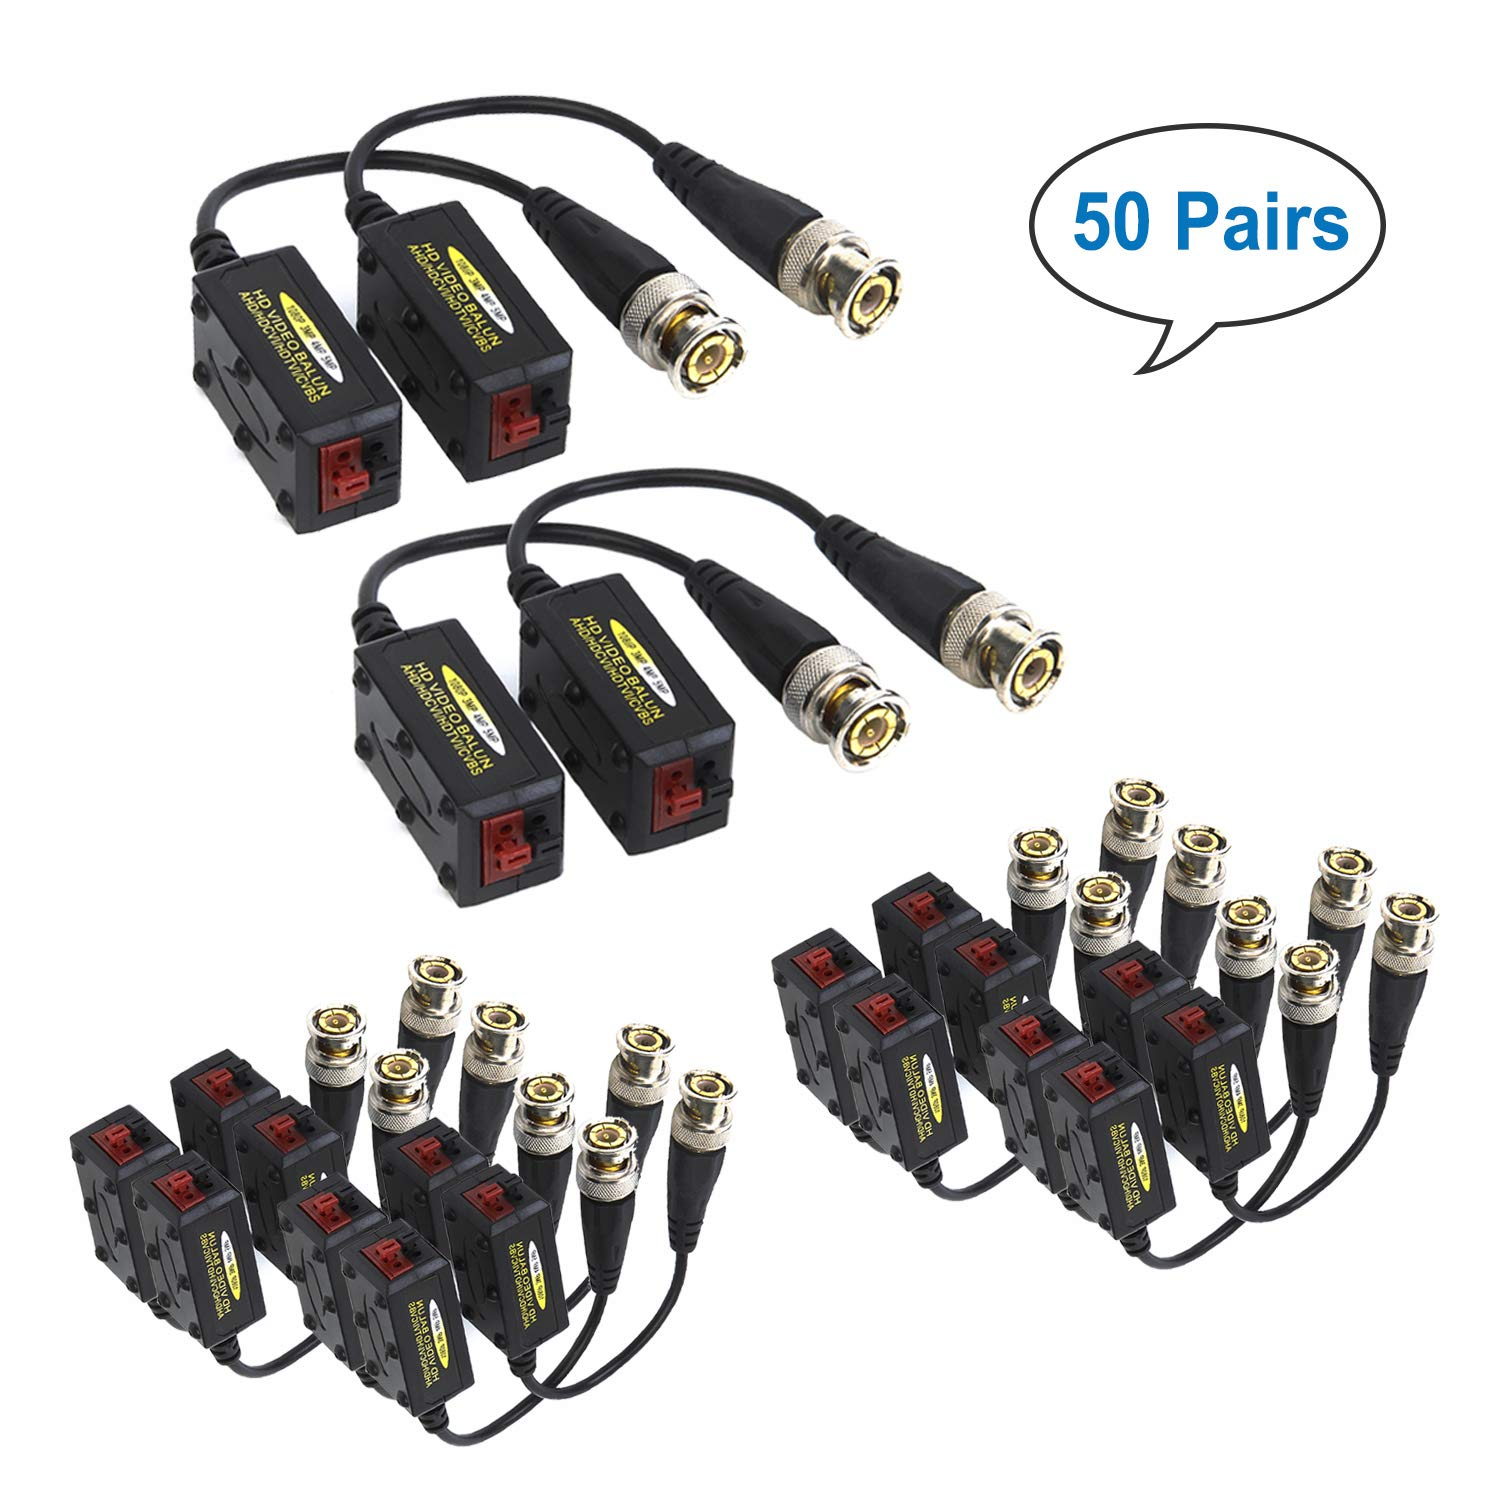 COOLM 50Pairs(100pcs) Passive HD-CVI/TVI/AHD Video Balun Connectors 720P/1080P/3MP/4MP/5MP Passive Transmitter/Transceivers for CCTV Security Camera Systems